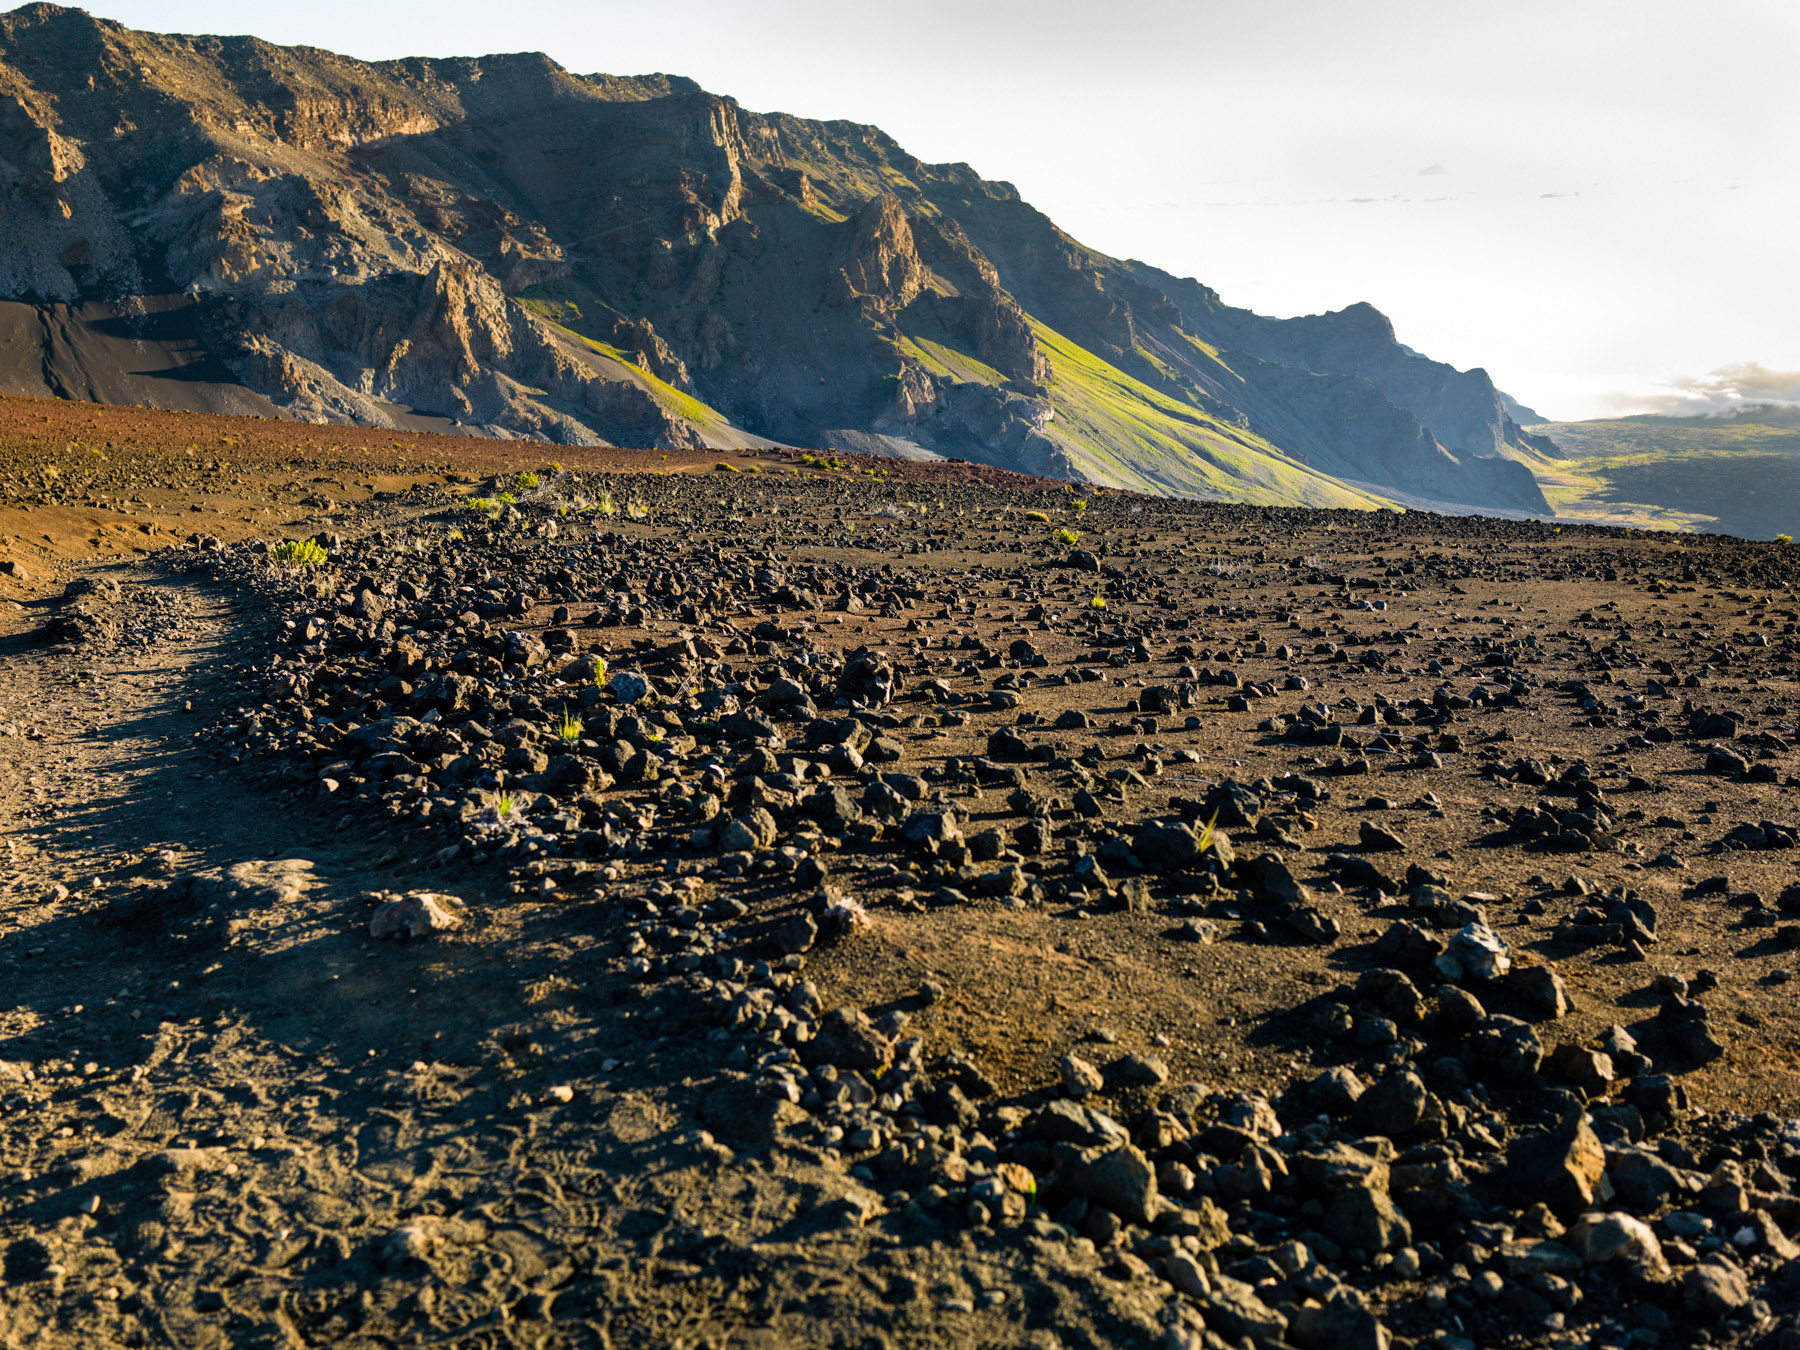 2014_Port_L32_201405_mauilandscapes_0715-Edit